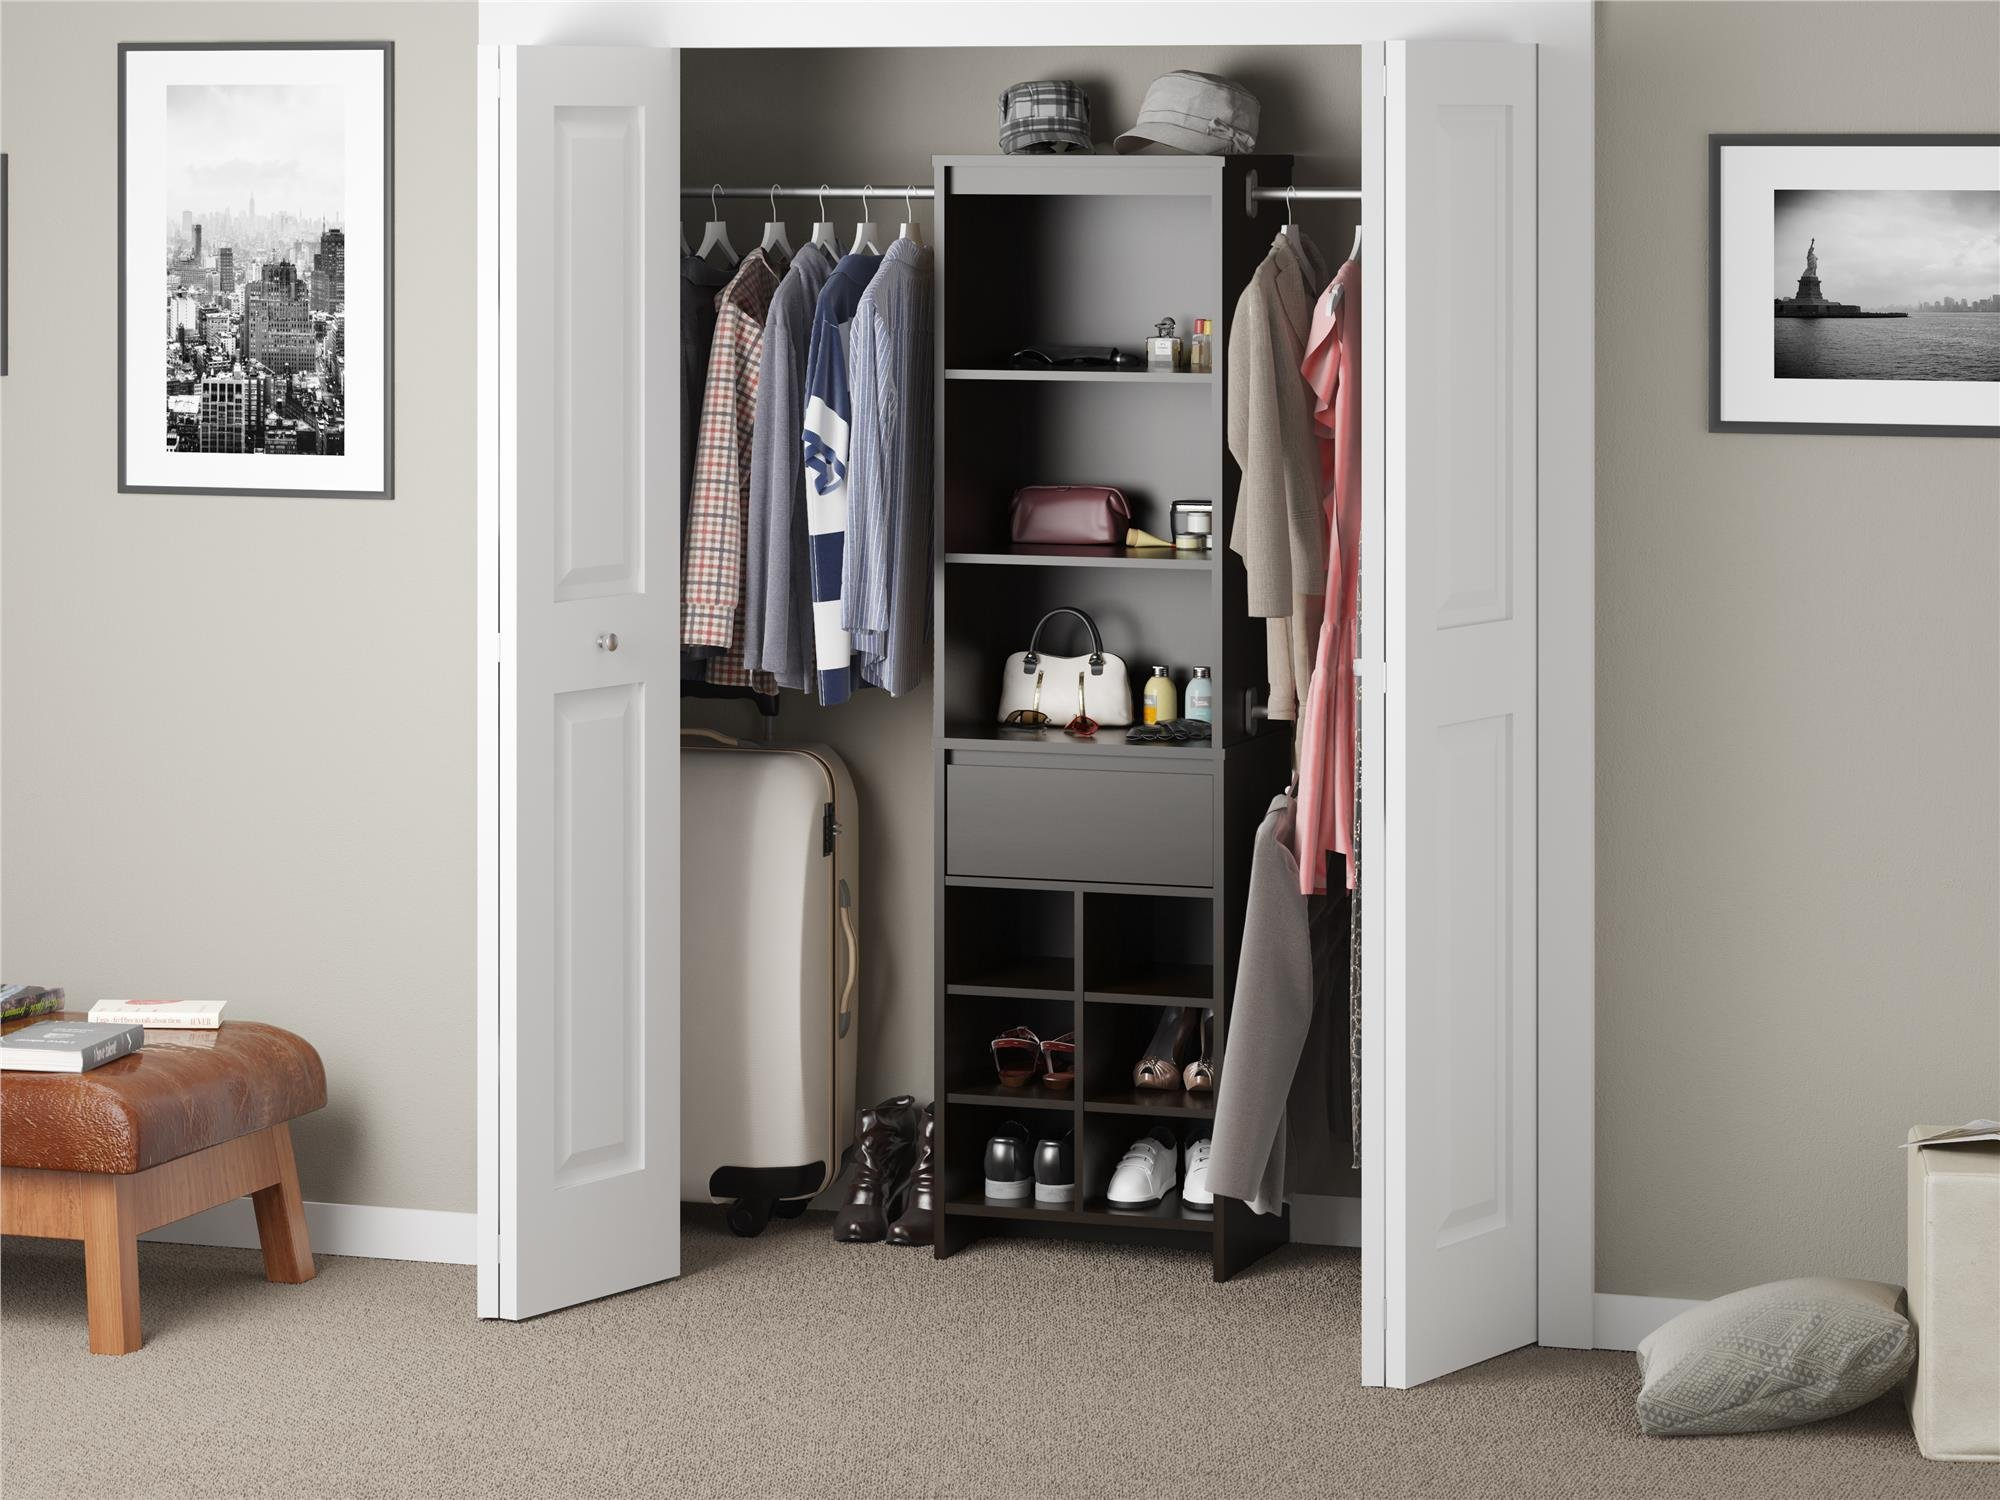 Ameriwood Home Adult Closet System, Espresso by Ameriwood Home (Image #4)